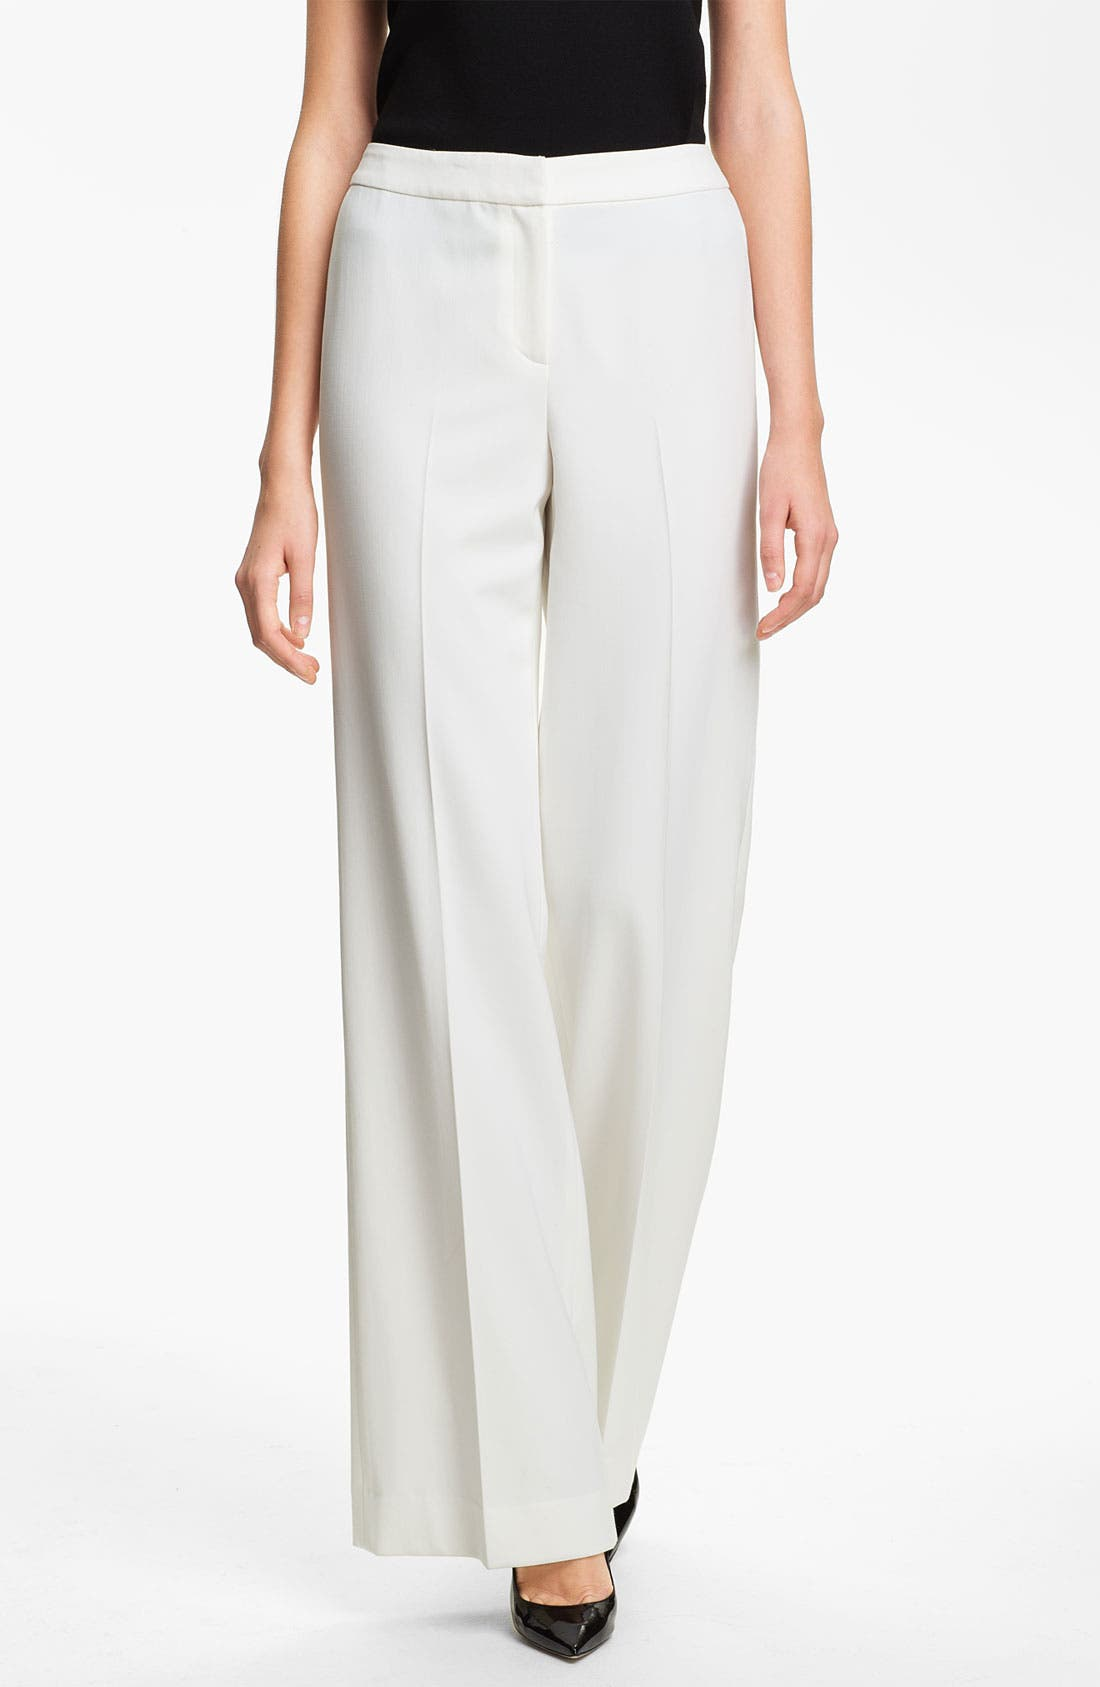 Alternate Image 1 Selected - St. John Collection 'Diana' Stretch Woven Pants